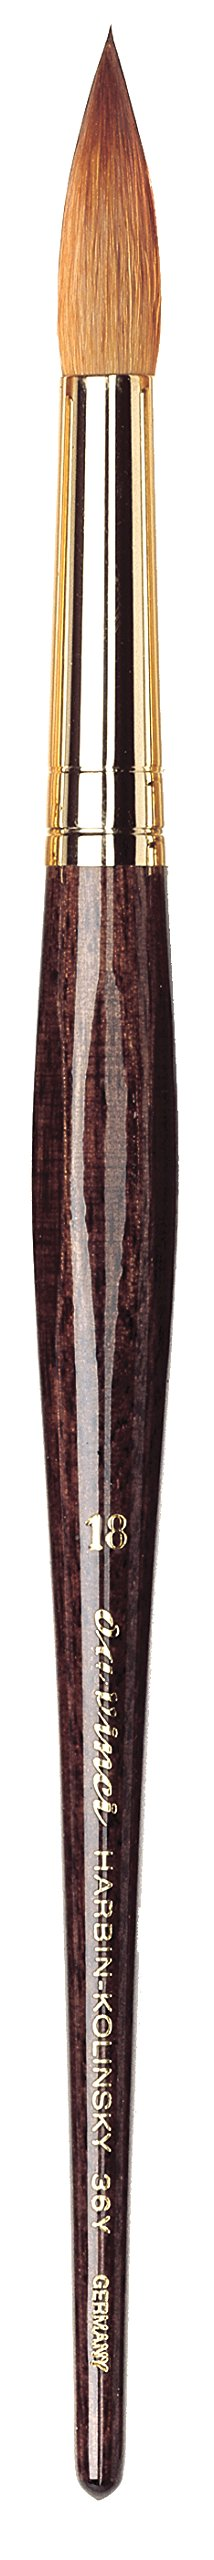 da Vinci Watercolor Series 36Y Paint Brush, Round Harbin Kolinsky Red Sable with Anthracite Hexagonal Handle, Size 18